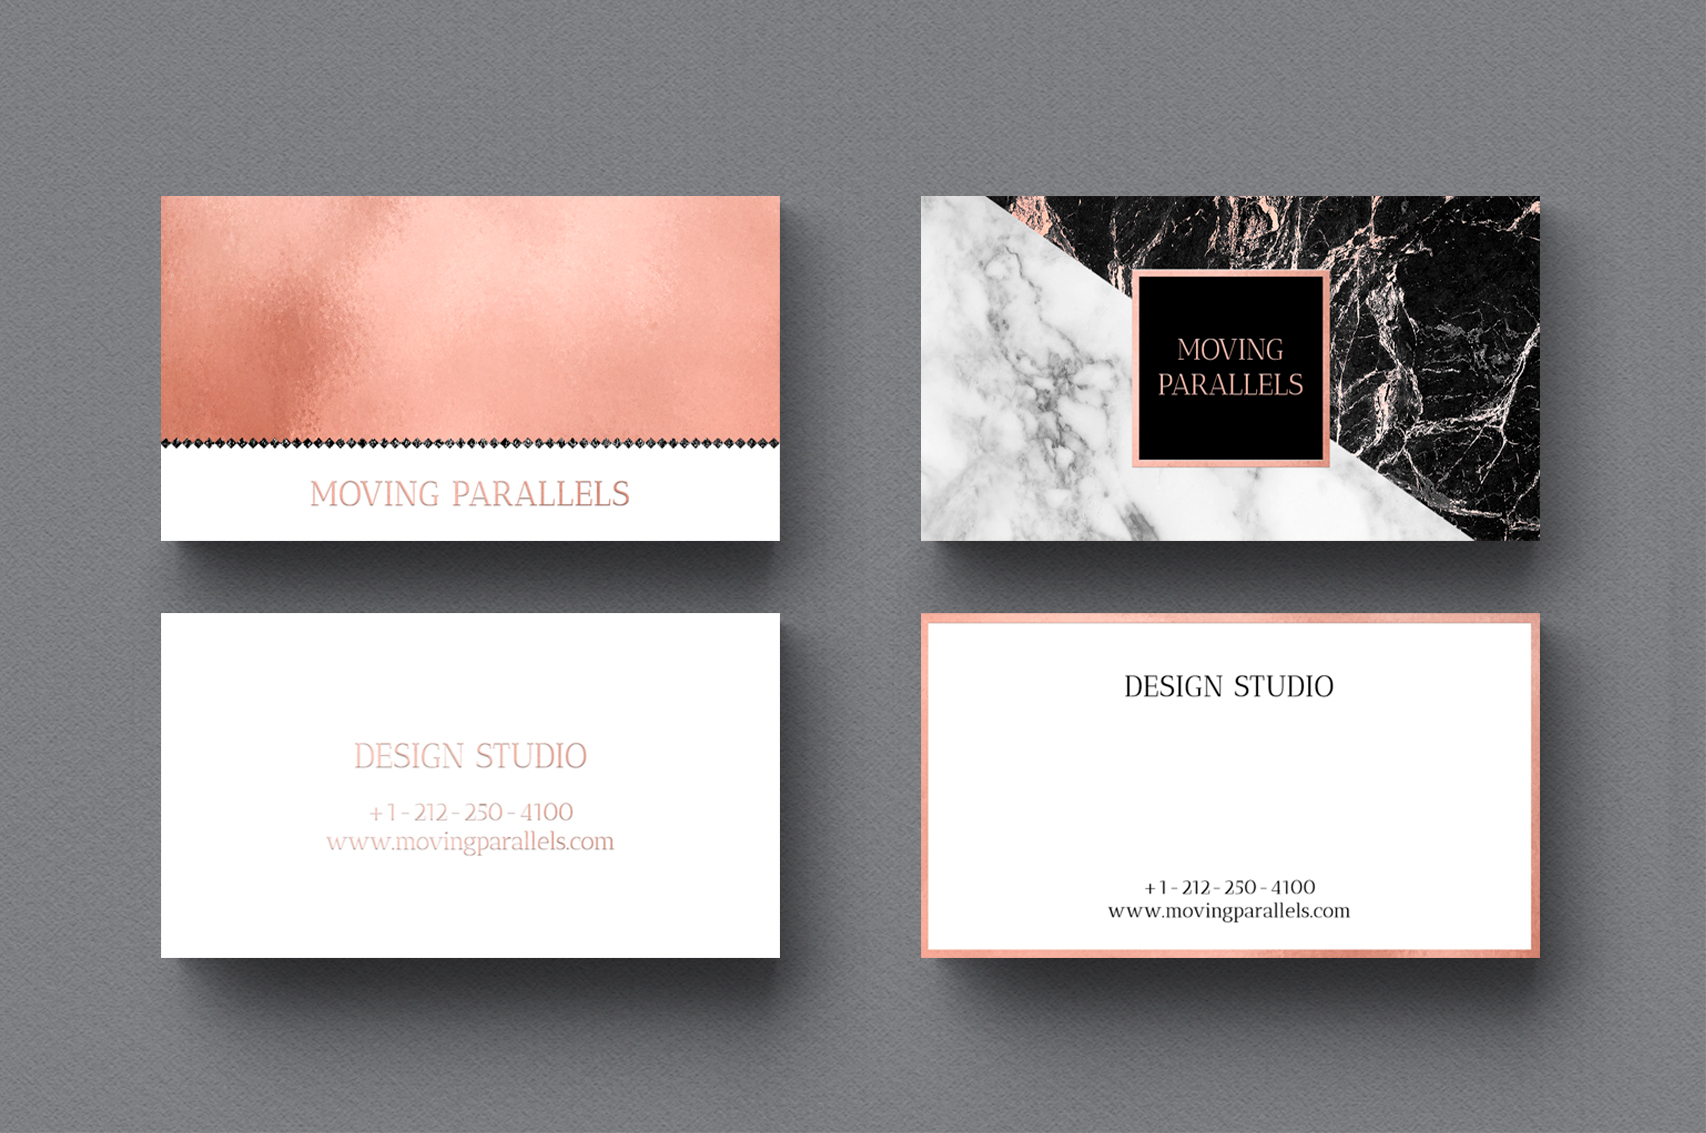 Rose gold marble business cards bundle design bundles rose gold marble business cards bundle example image 5 colourmoves